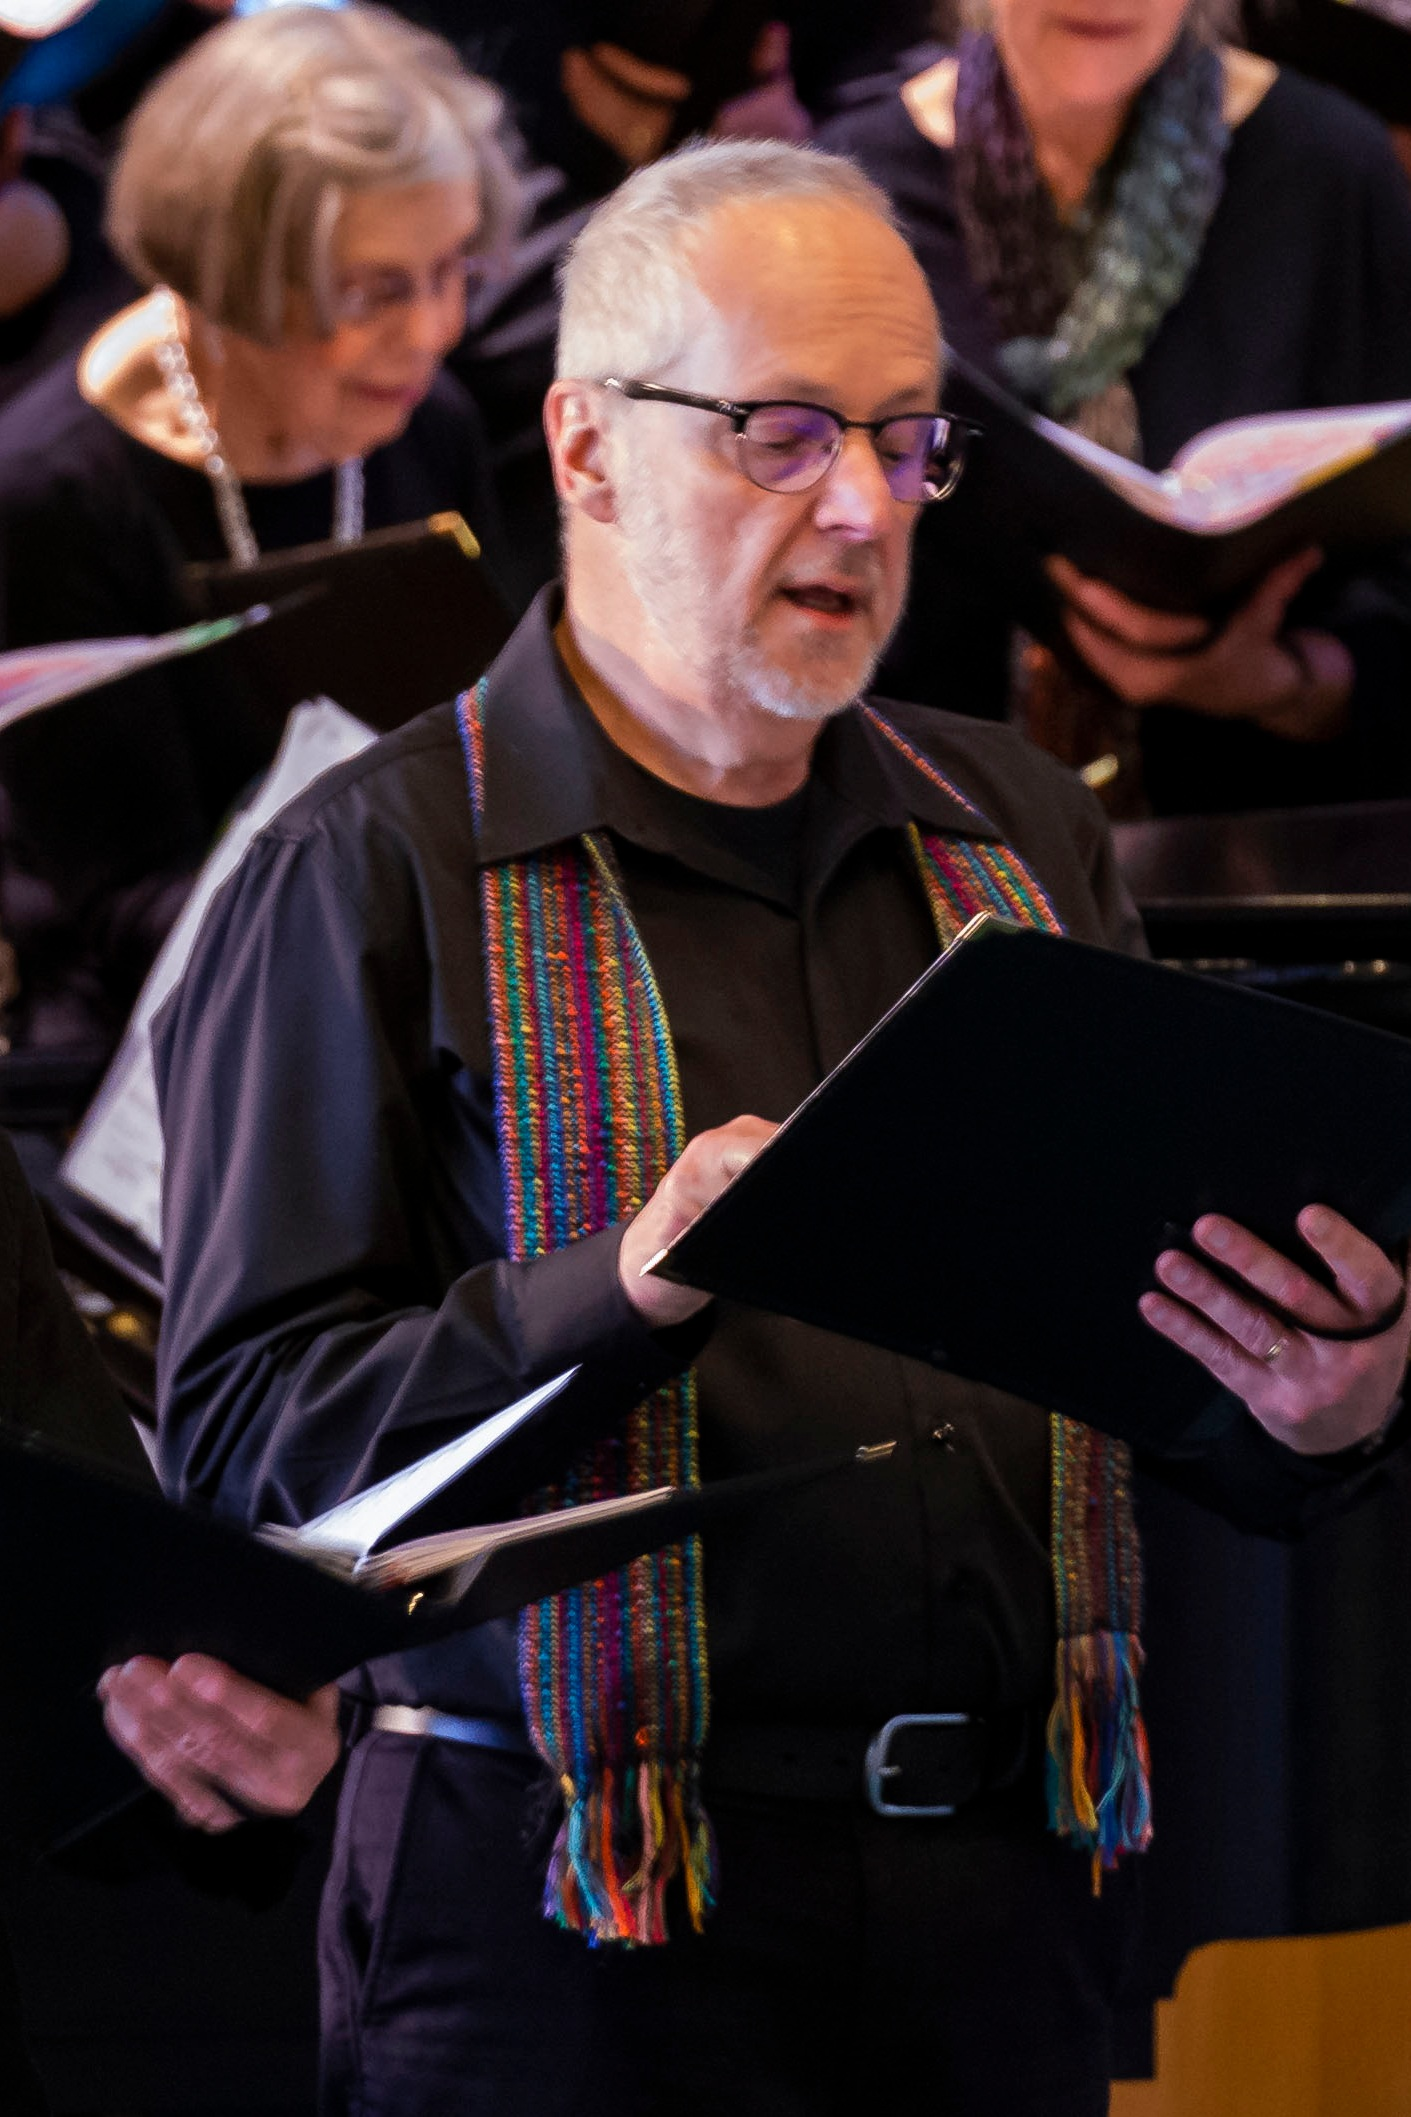 Bill Turnbull, Vice-president   Bill has sung Tenor with BCC since 2017. You'll see him on guitar as well!